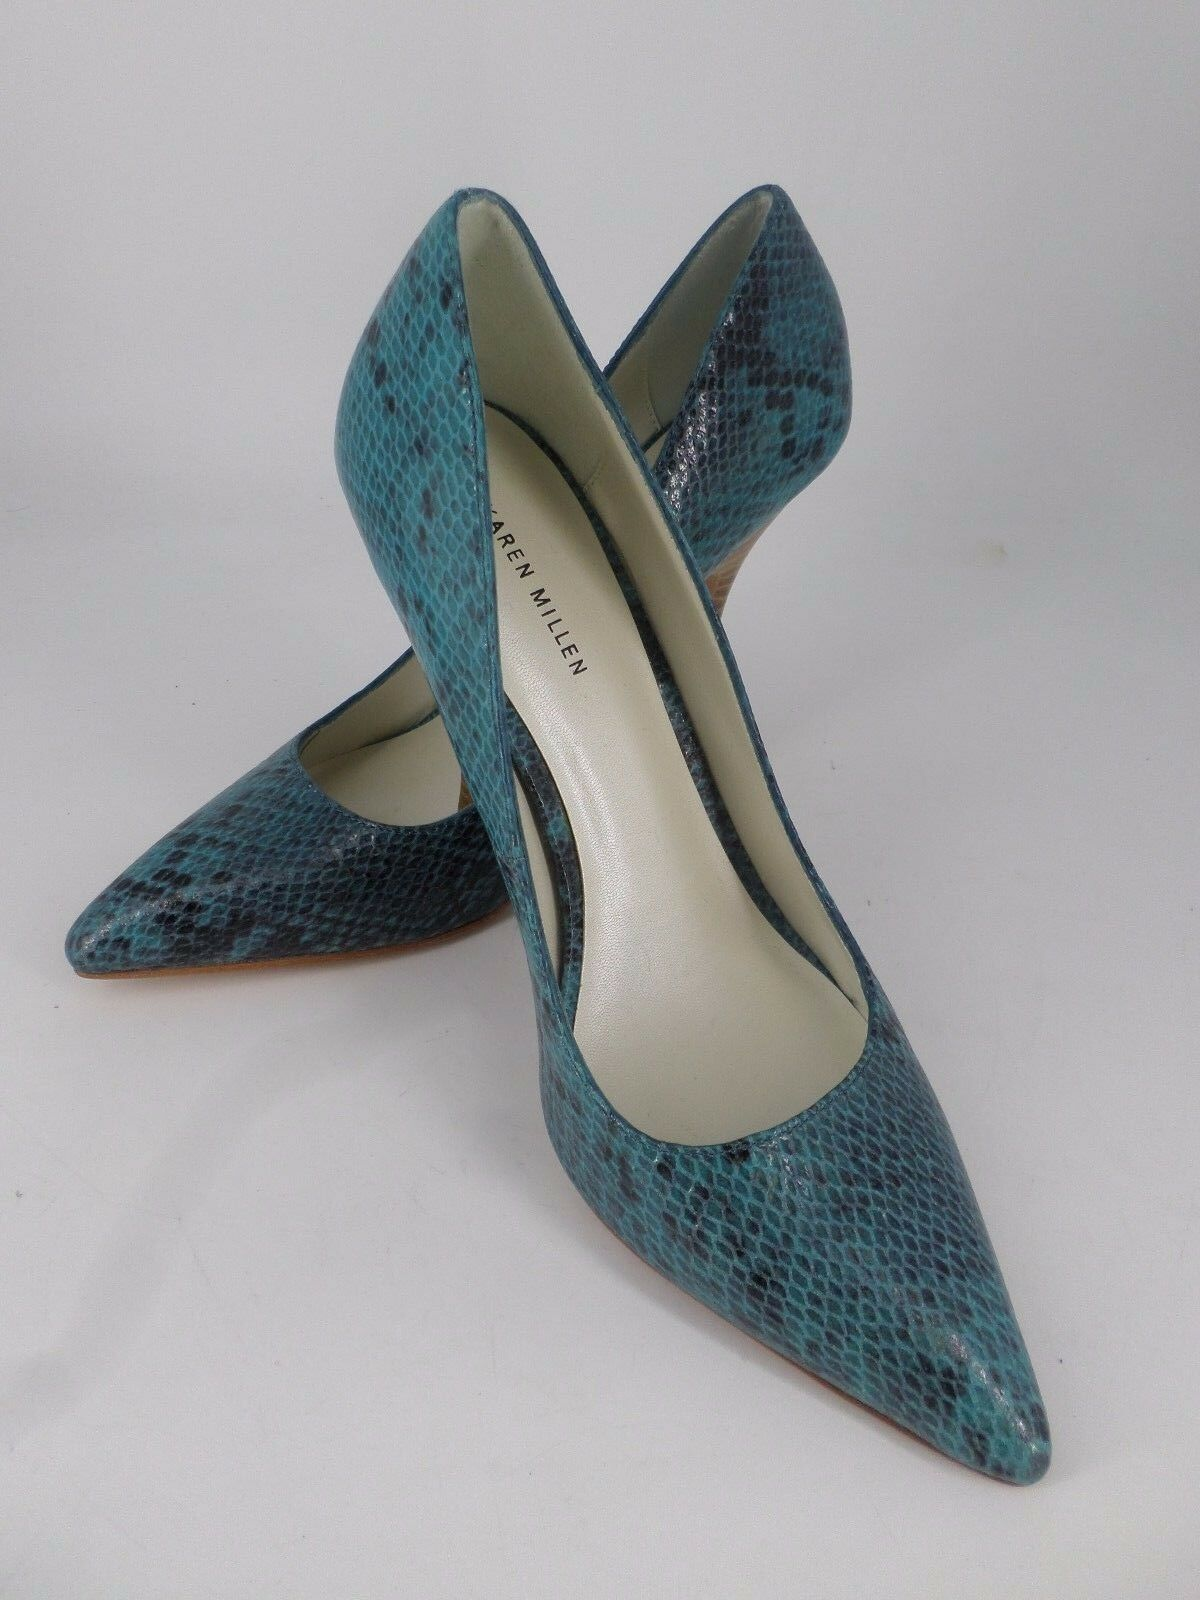 Karen Millen Turquise Snake Skin Effect Court Schuhes UK 83 6 EU 39 LN19 83 UK 3bad94